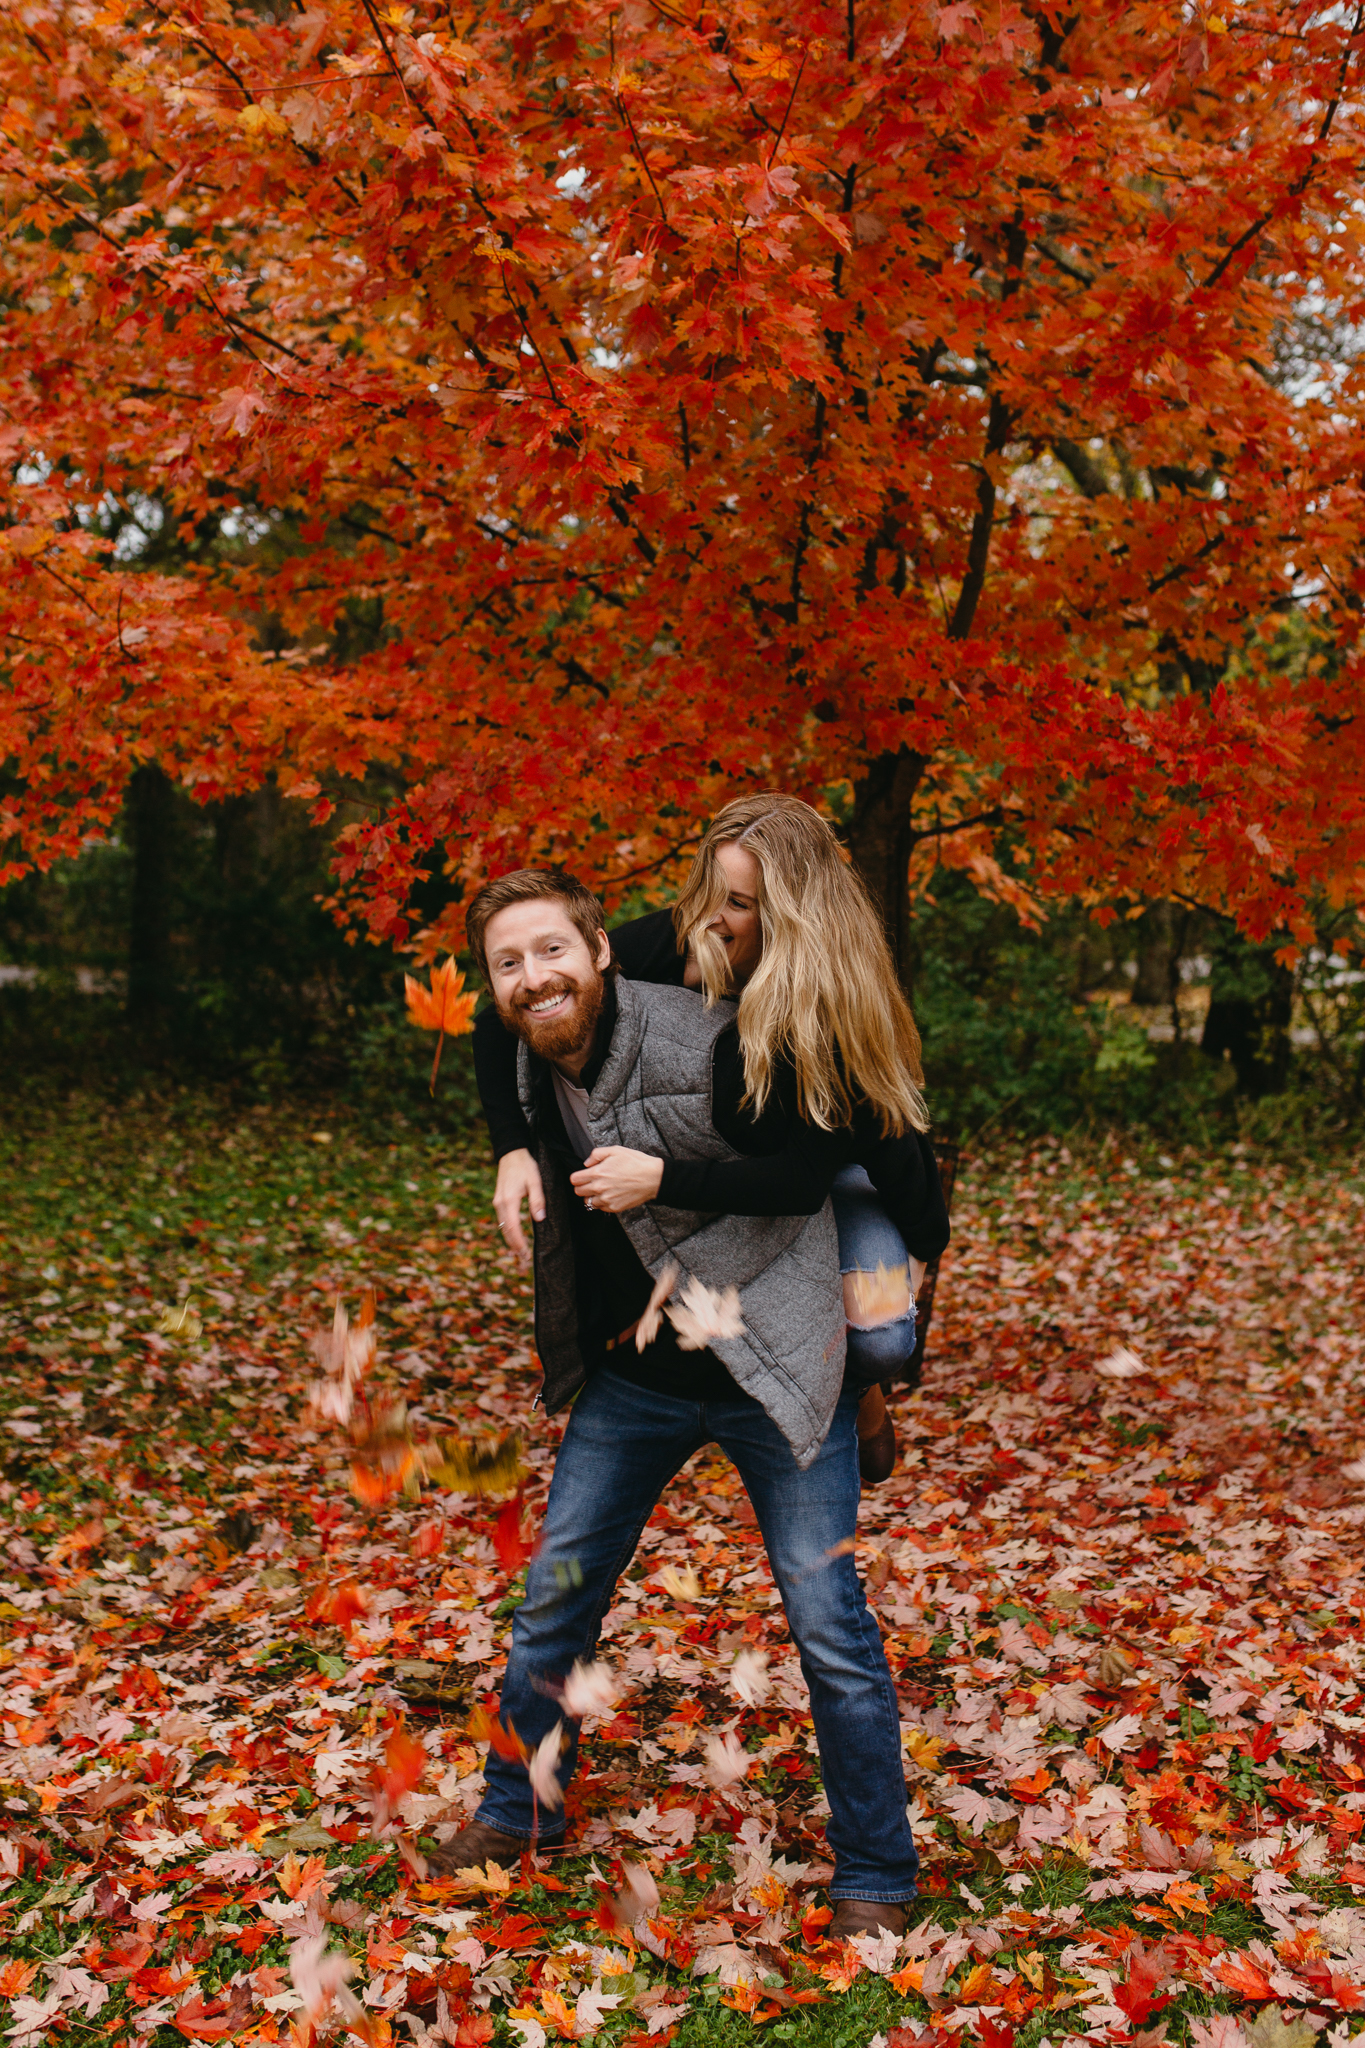 Engaged couple laughing and playing amidst bright red leaves in fall in Chicago.